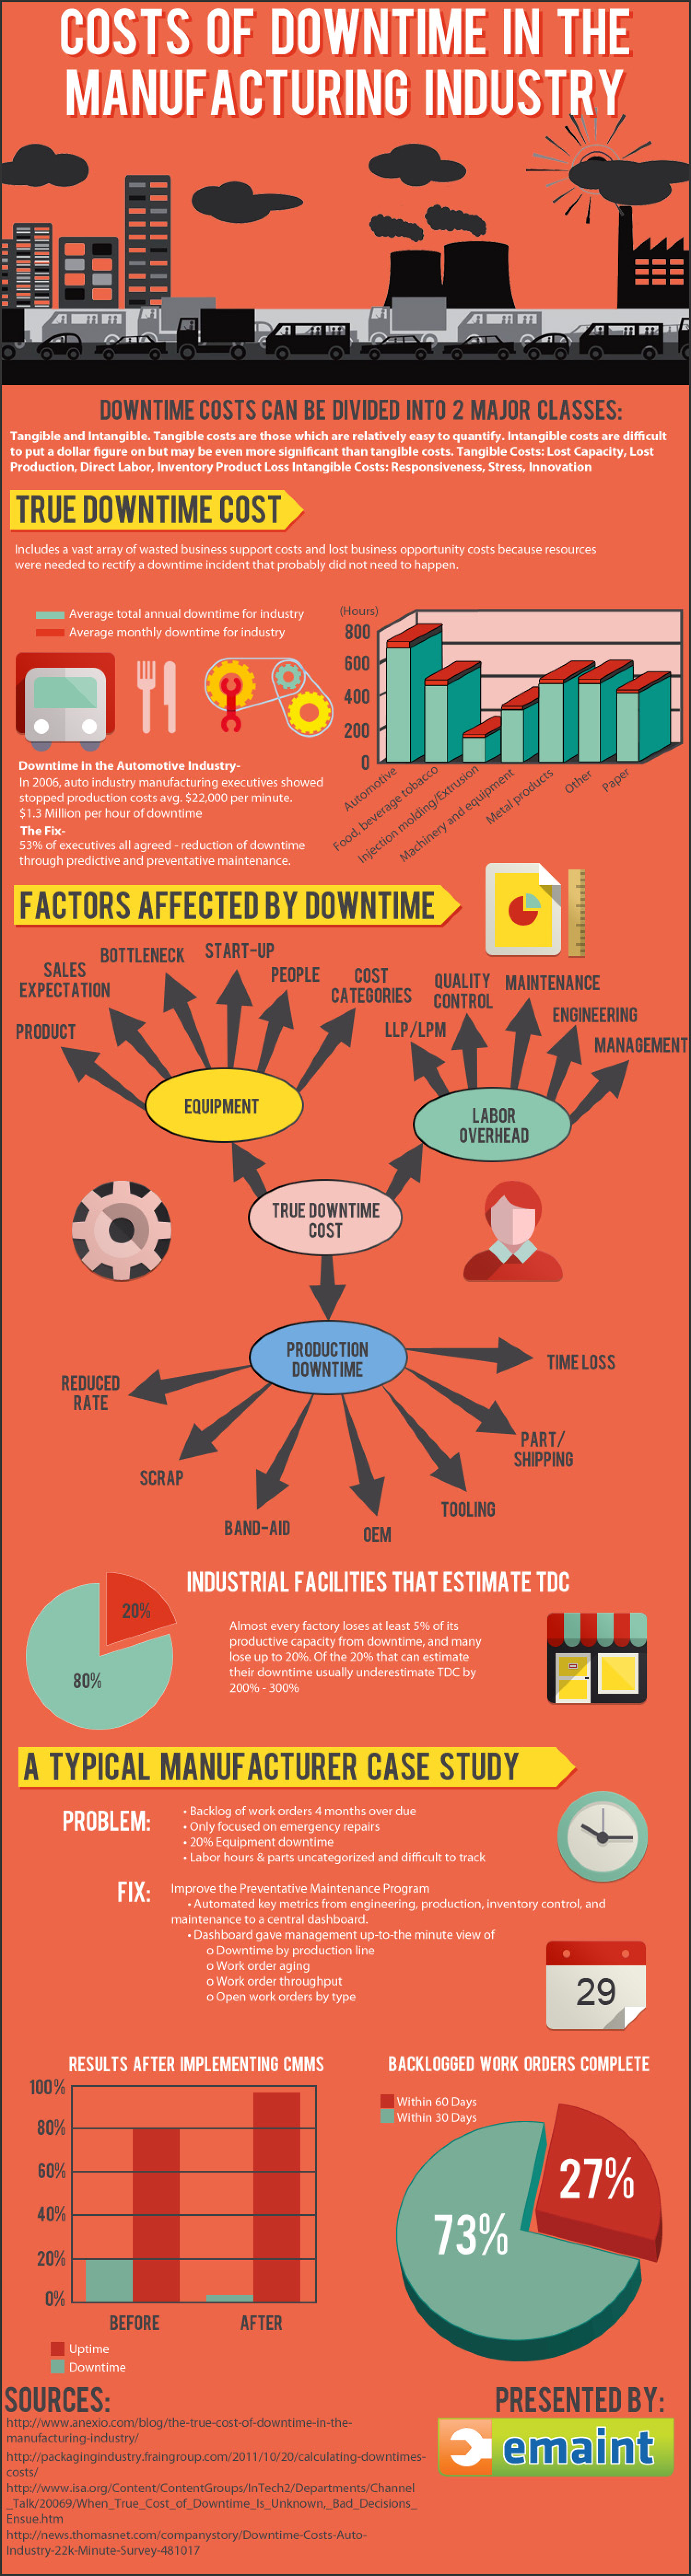 Costs of Downtime in the Manufacturing Industry Infographic